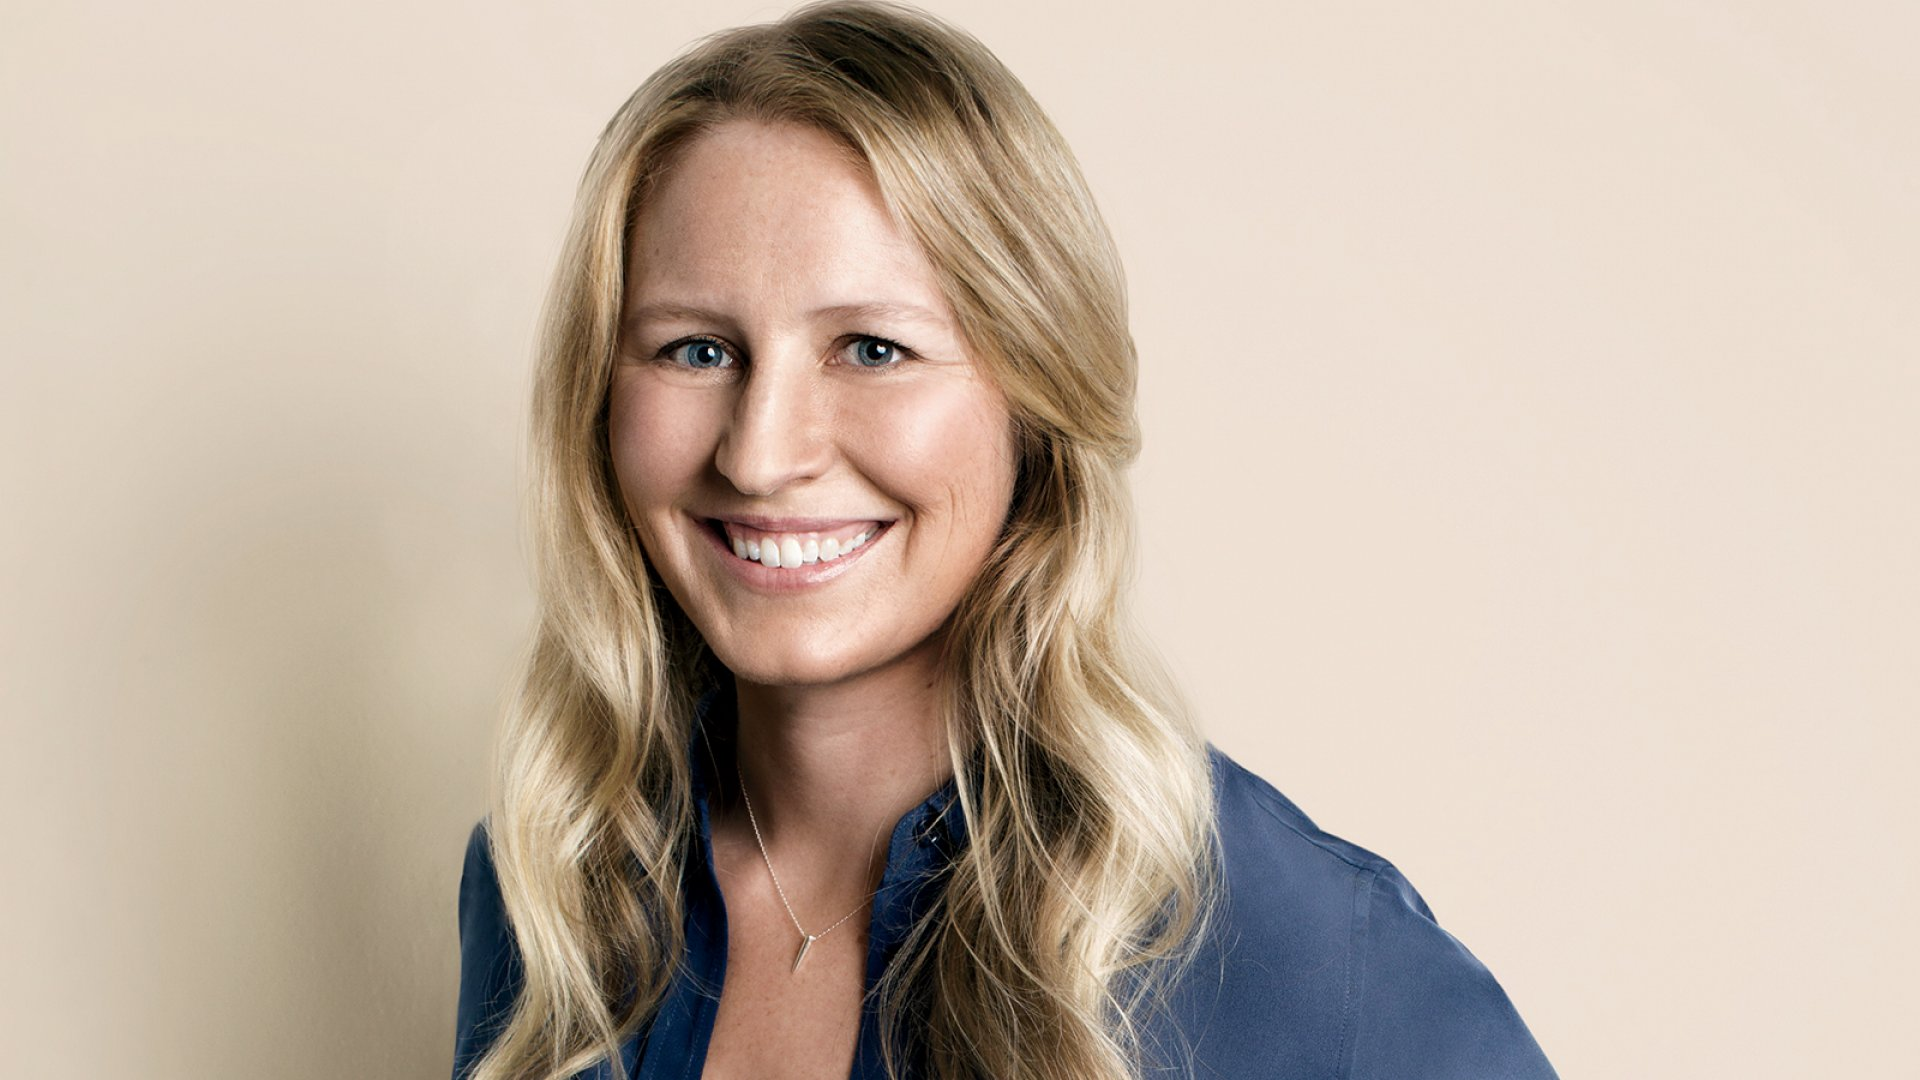 Danae Ringelmann started Indiegogo long before <em>crowdfunding</em> was a household term.